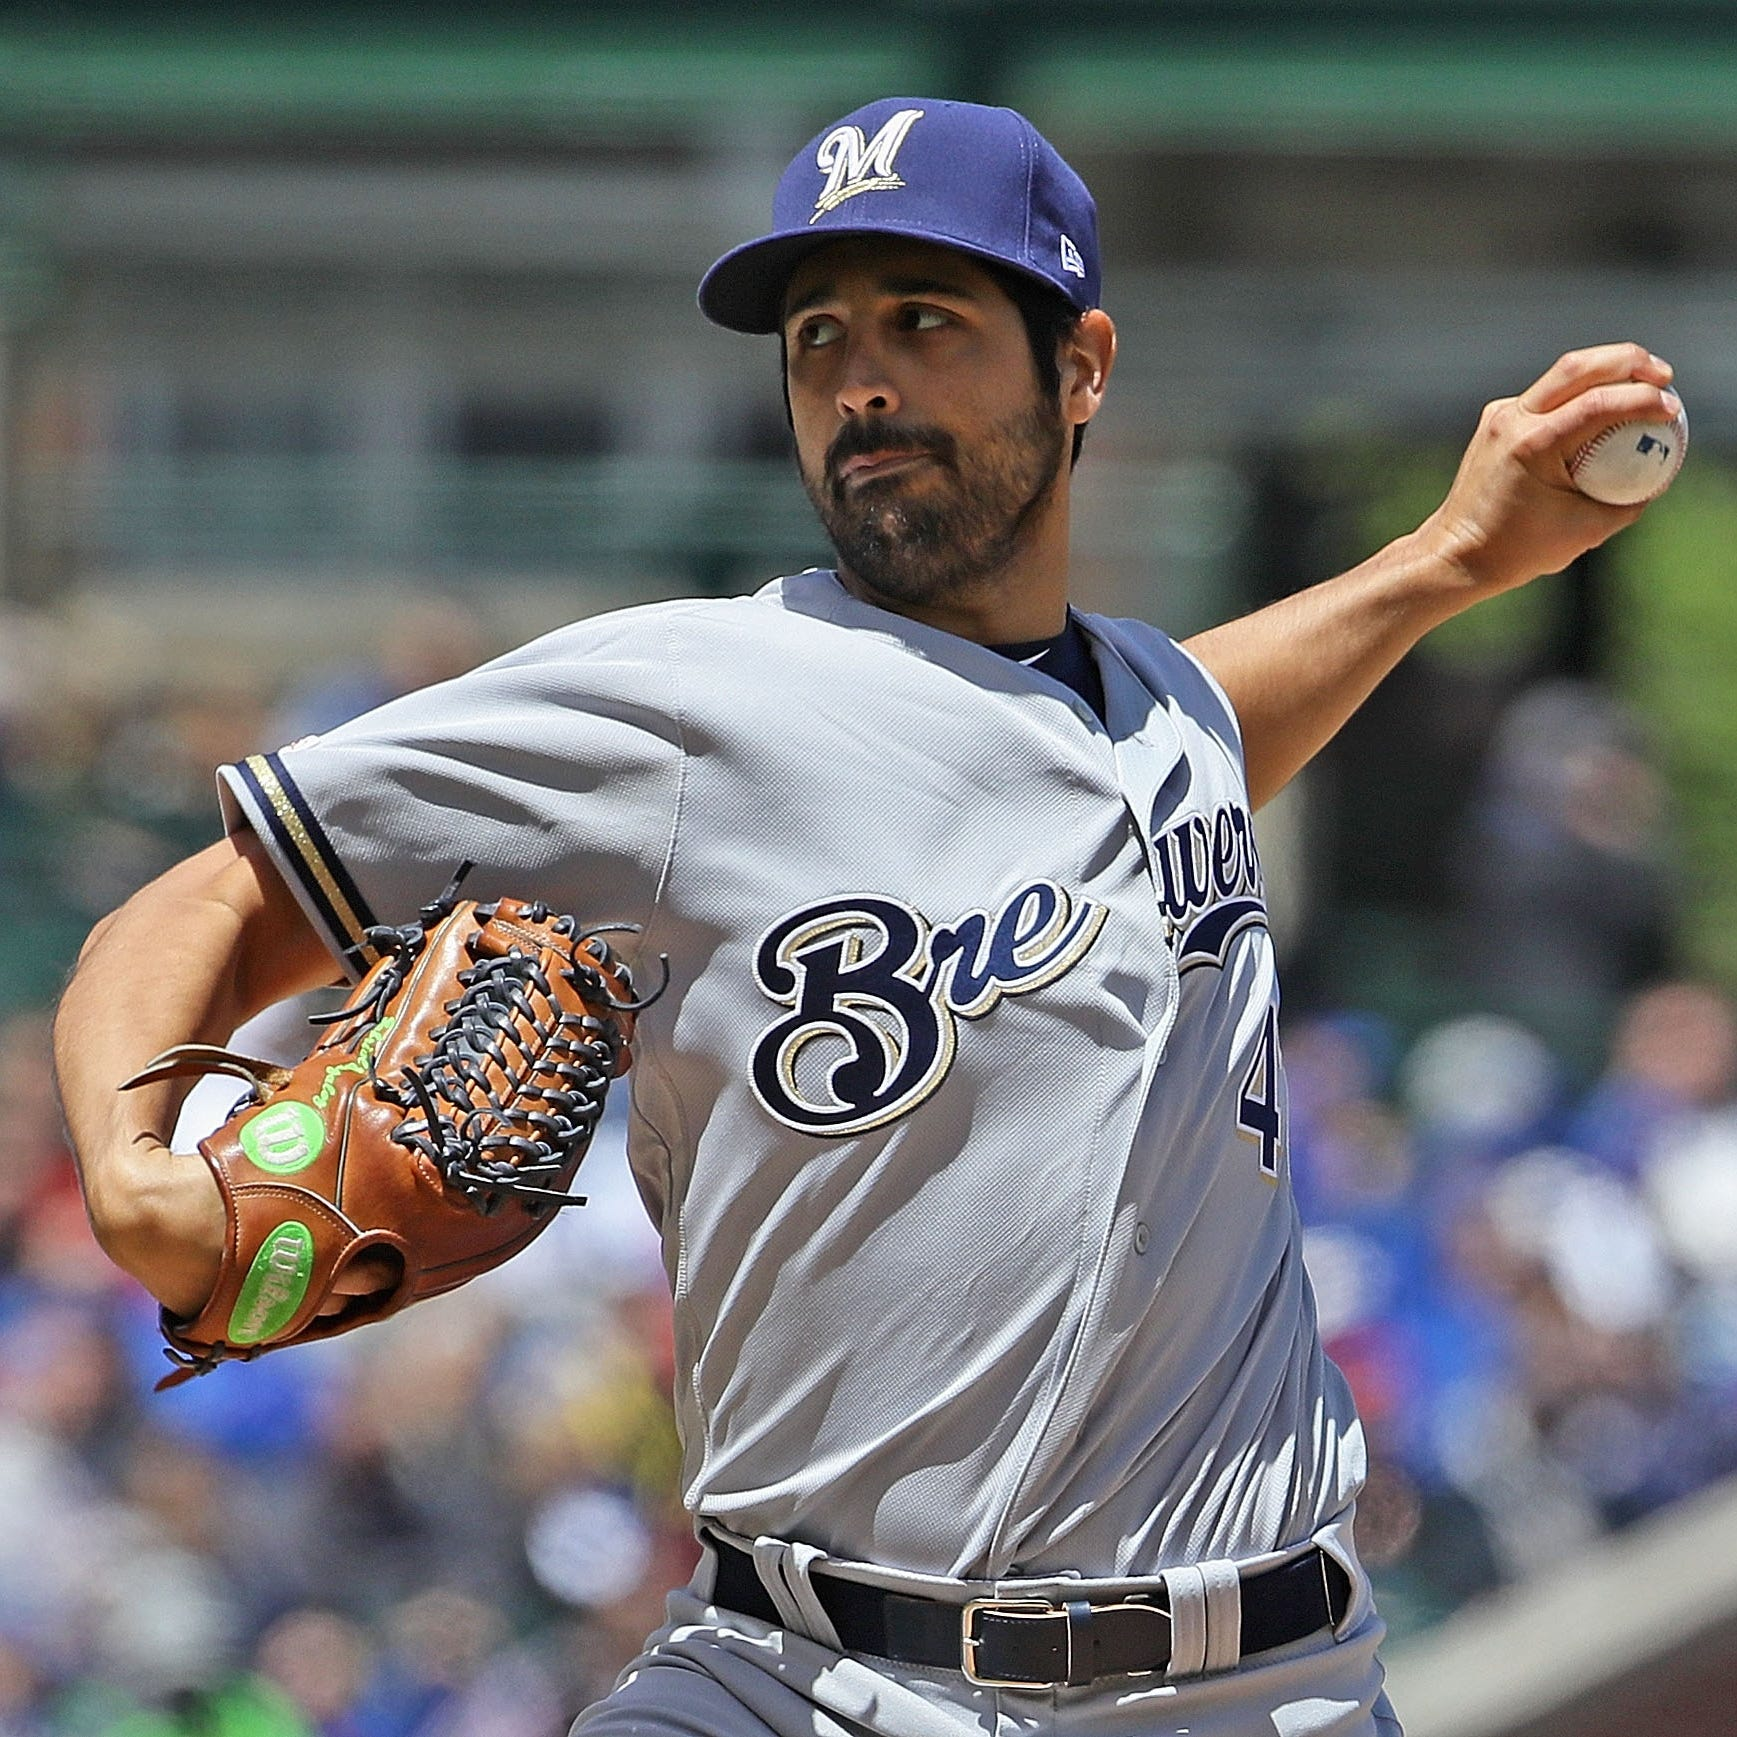 Addition of veteran Gio Gonzalez has played important role in turning around Brewers' pitching